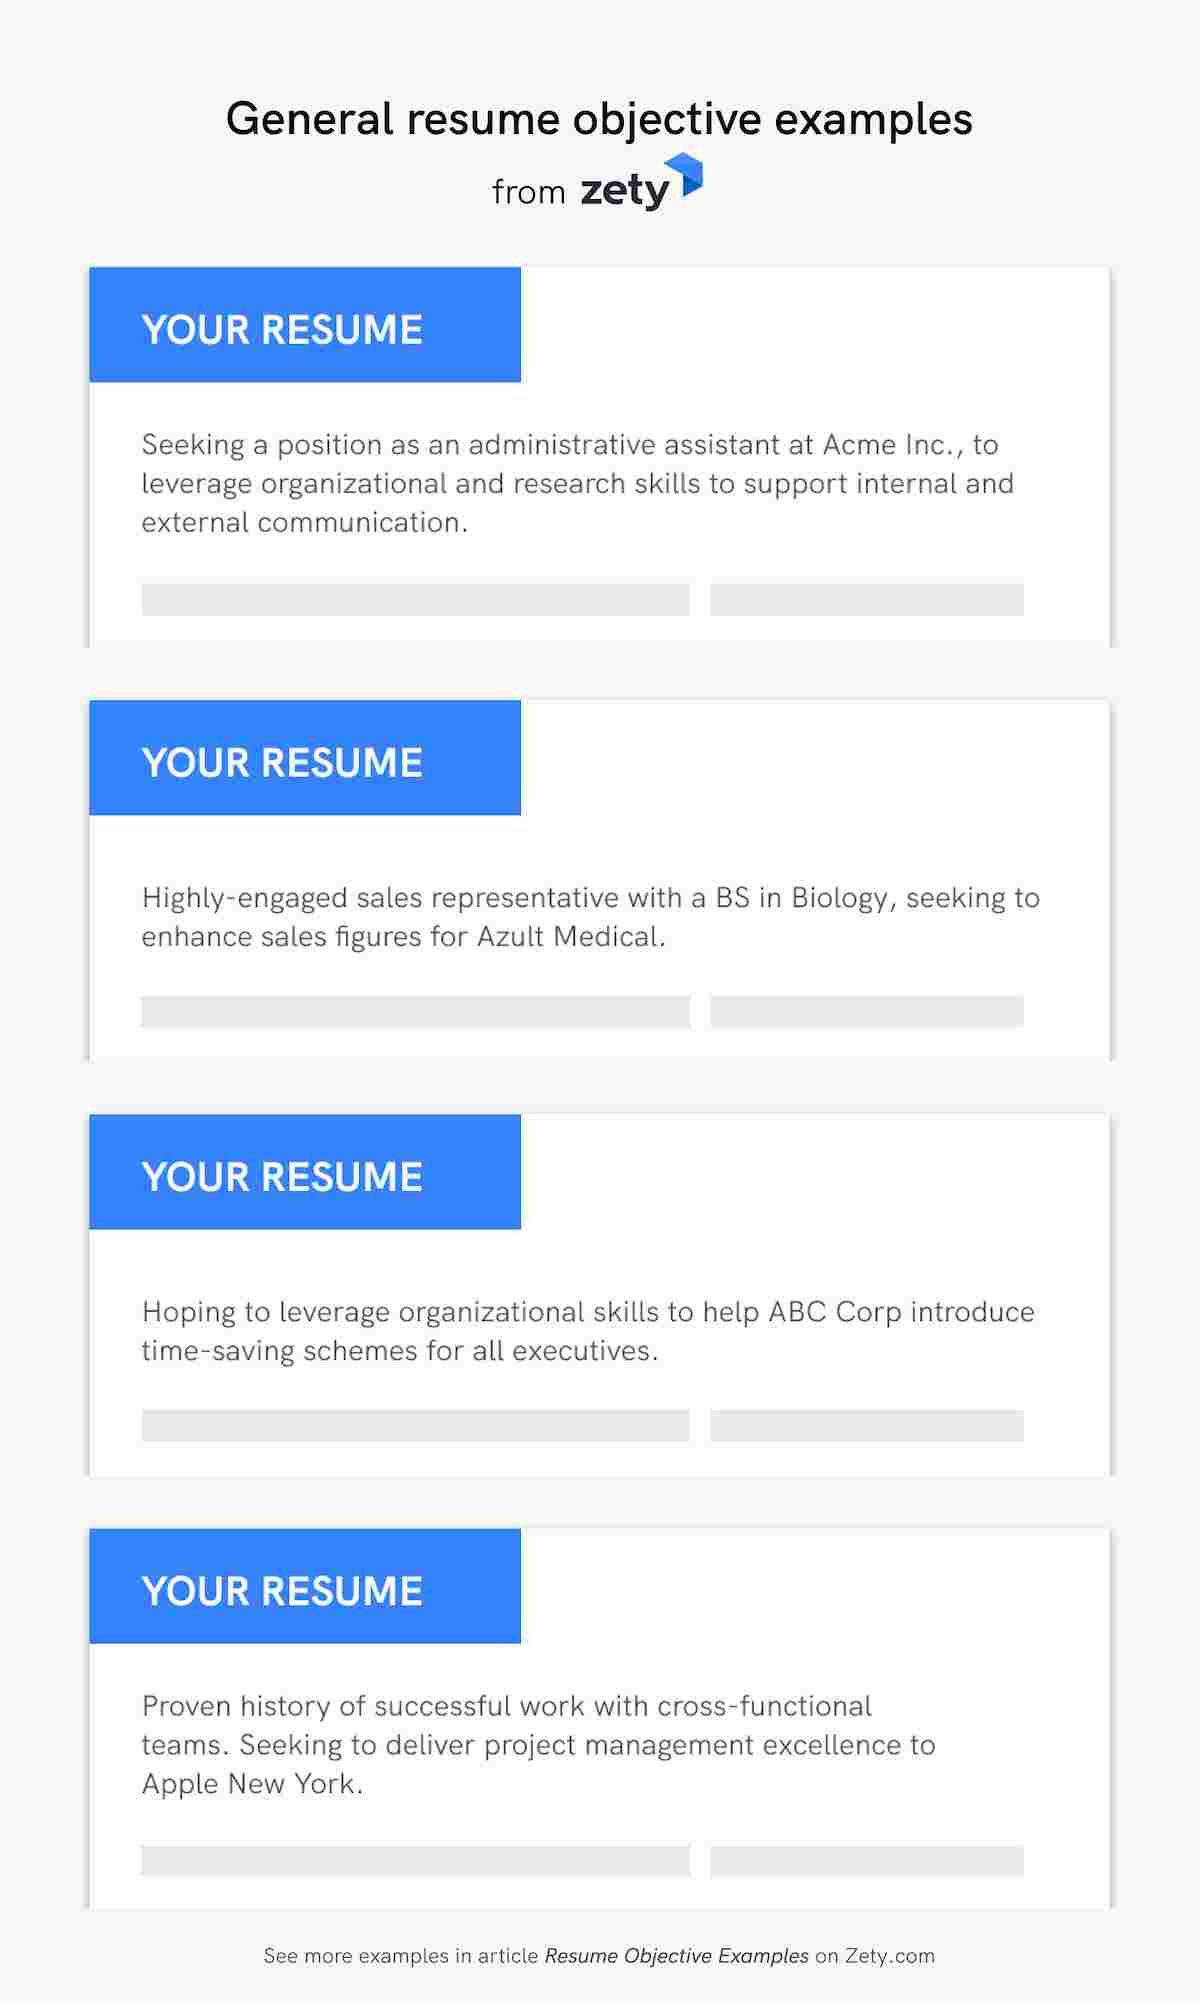 resume objective examples career objectives for all jobs communication general lte test Resume Communication Resume Objective Examples